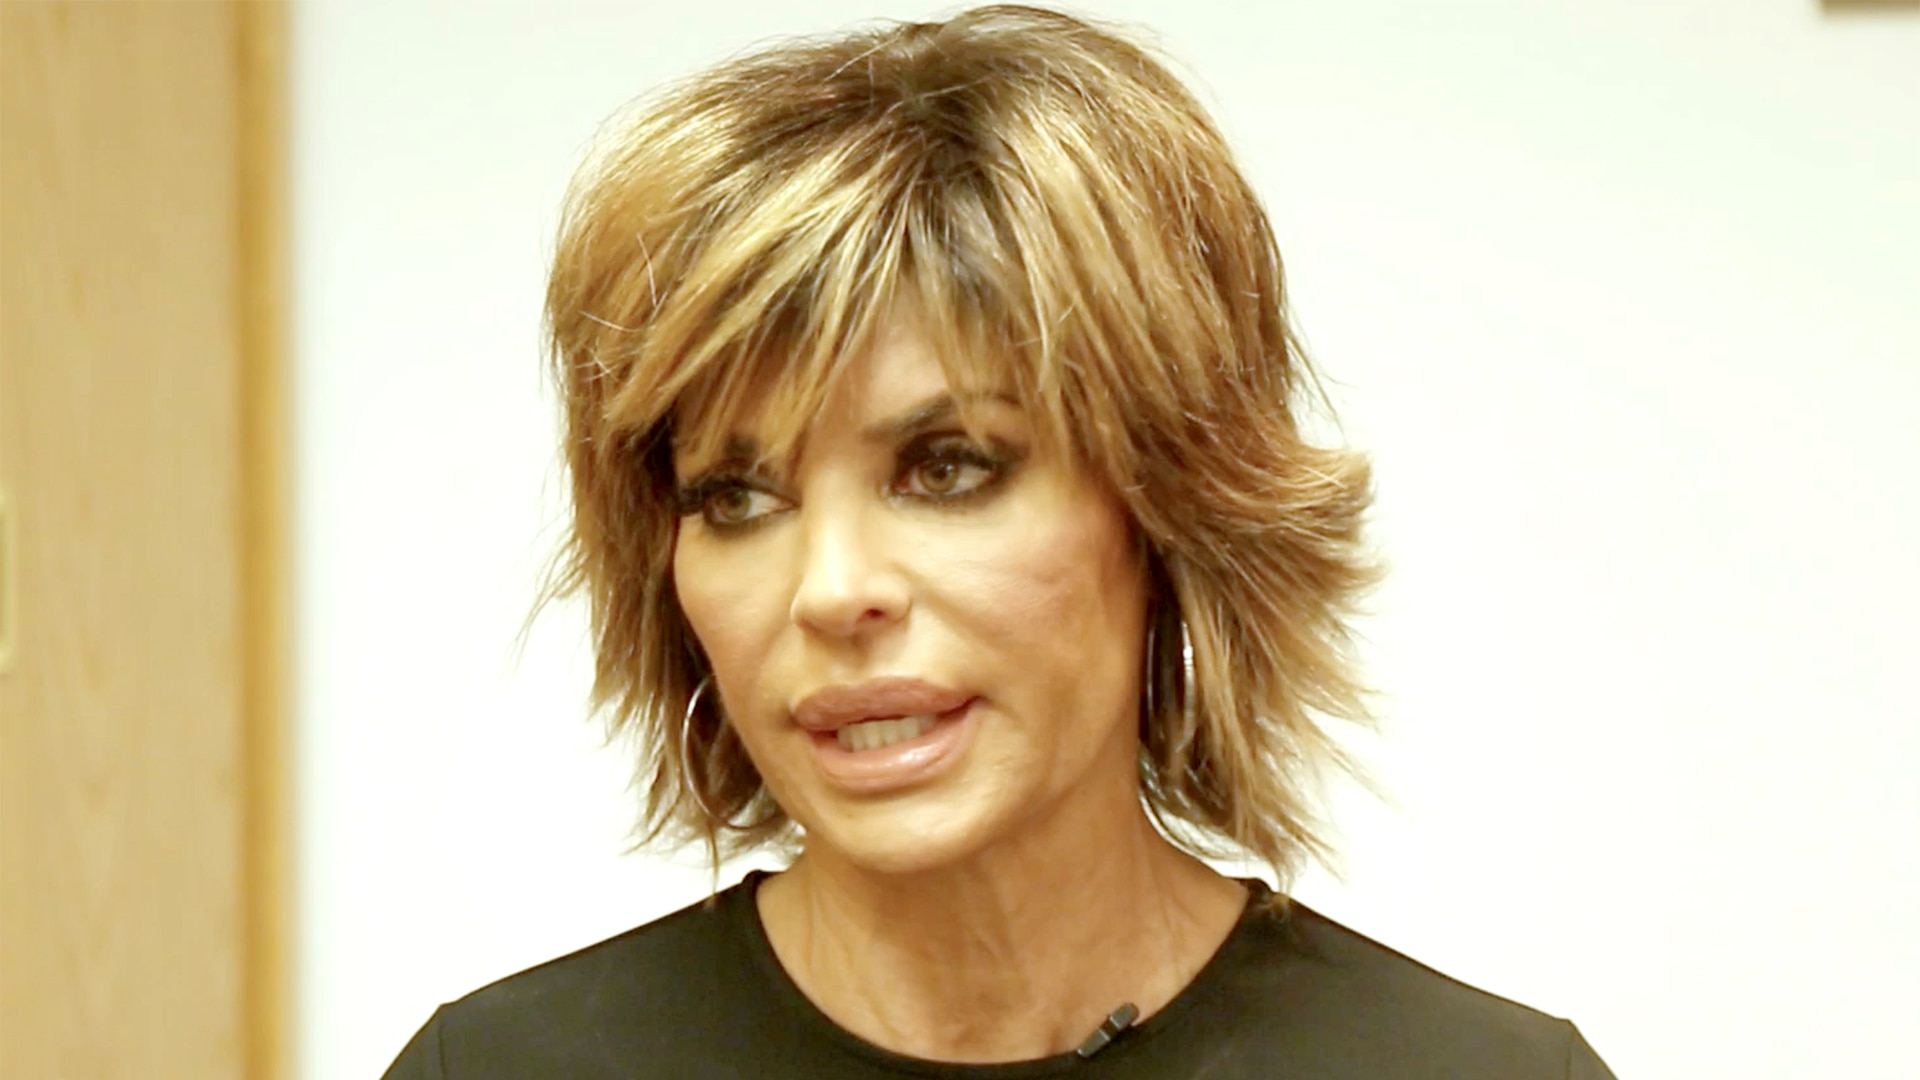 Pictures Lisa Rinna naked (17 photo), Topless, Hot, Instagram, bra 2006